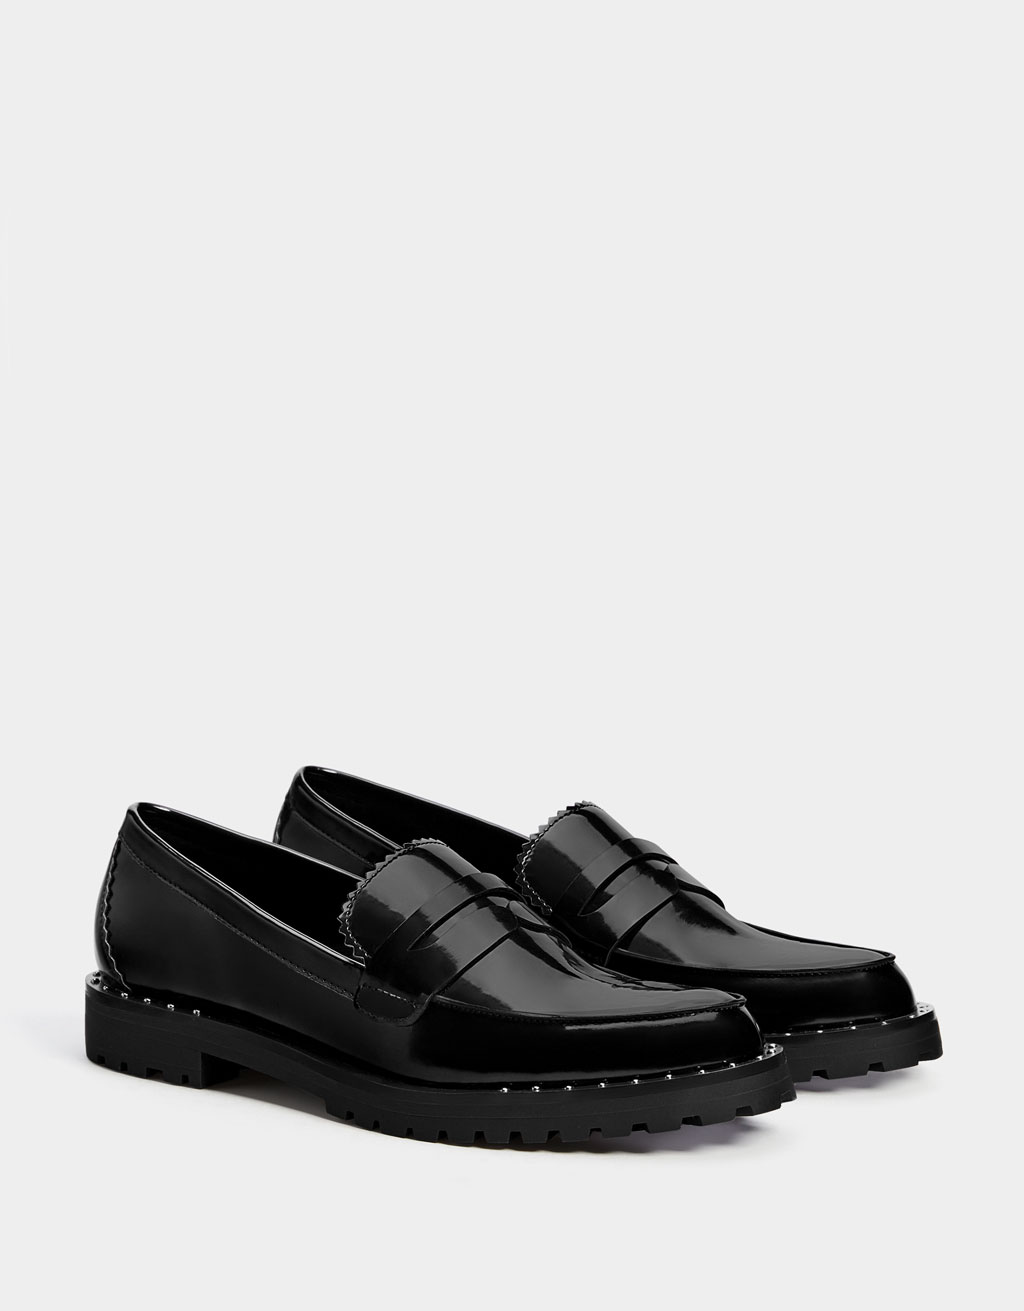 Faux patent leather loafers with studs